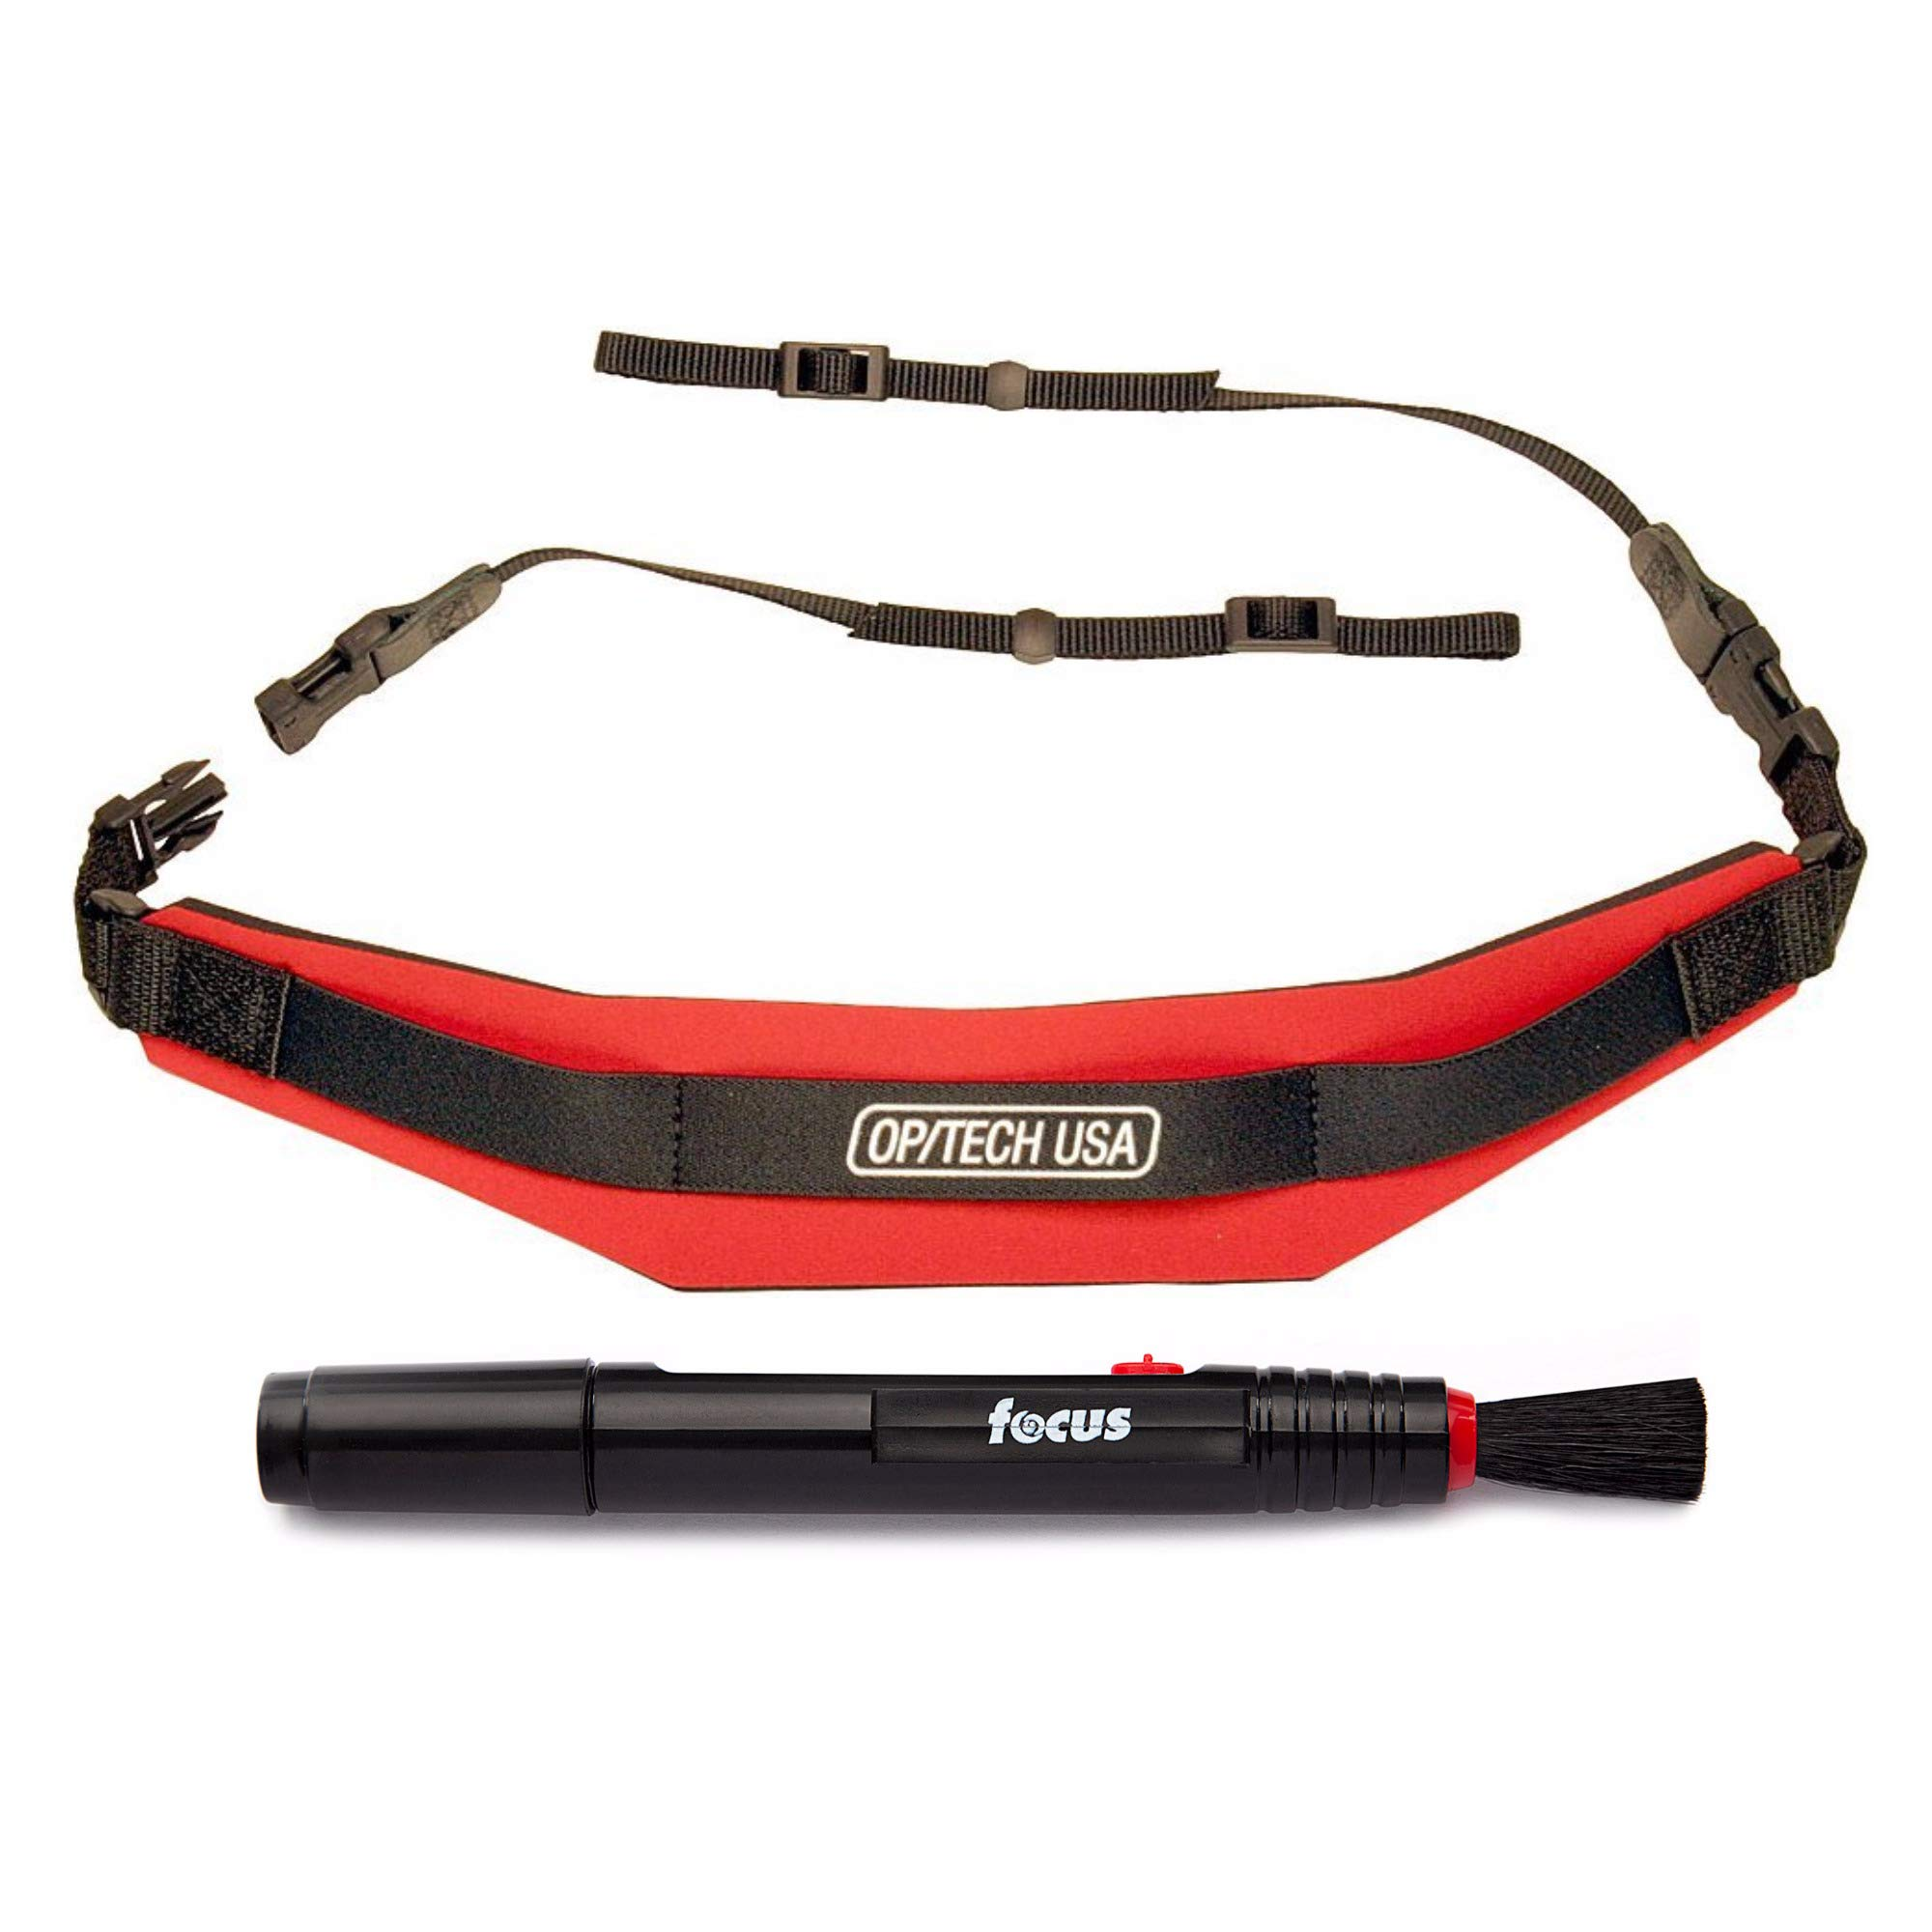 OP/TECH USA Adjustable Pro Camera Strap with Extra Comfort Neck Pad (Red) and Lens Cleaning Pen